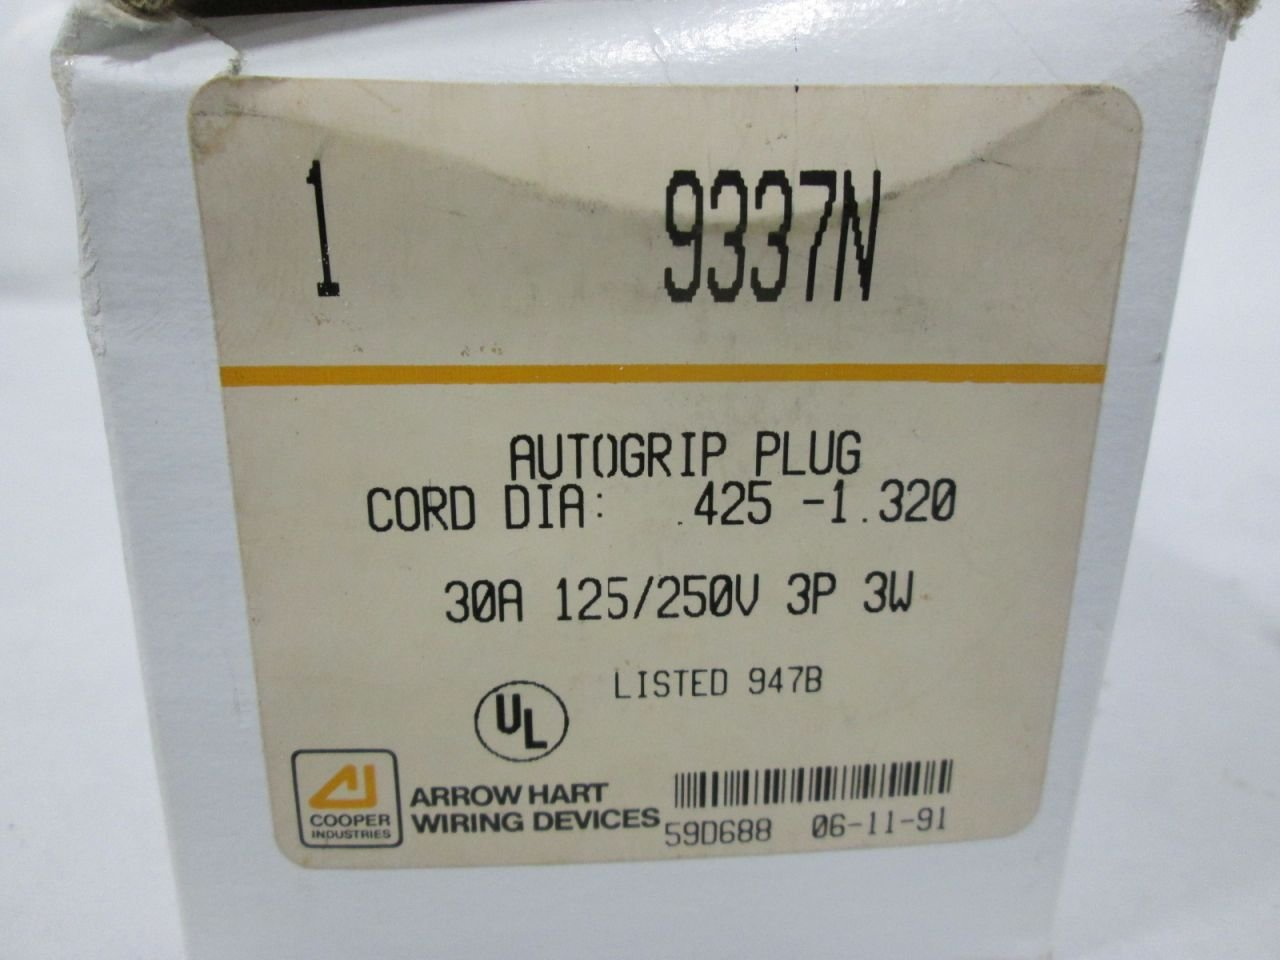 New Arrow Hart 9337n Autogrip Plug 125 250v 30a 3w 3p Wiring Devices Receptacle D316312 Industrial Scientific